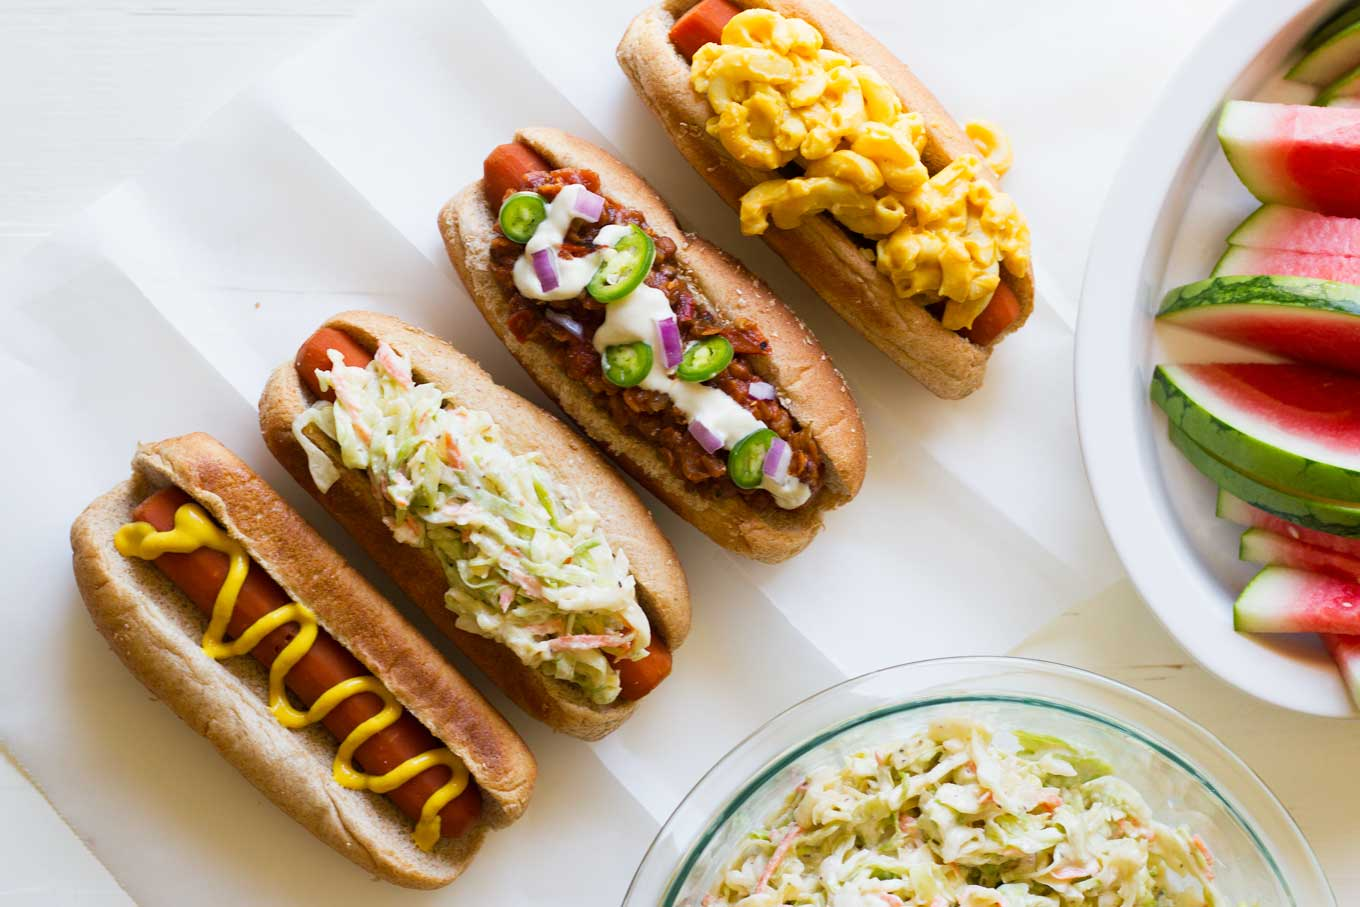 Carrot dogs topped with mustard, coleslaw, vegan chili, and vegan mac and cheese | Easy Carrot Dogs | Plant-based | Vegan | Recipe | https://passtheplants.com/